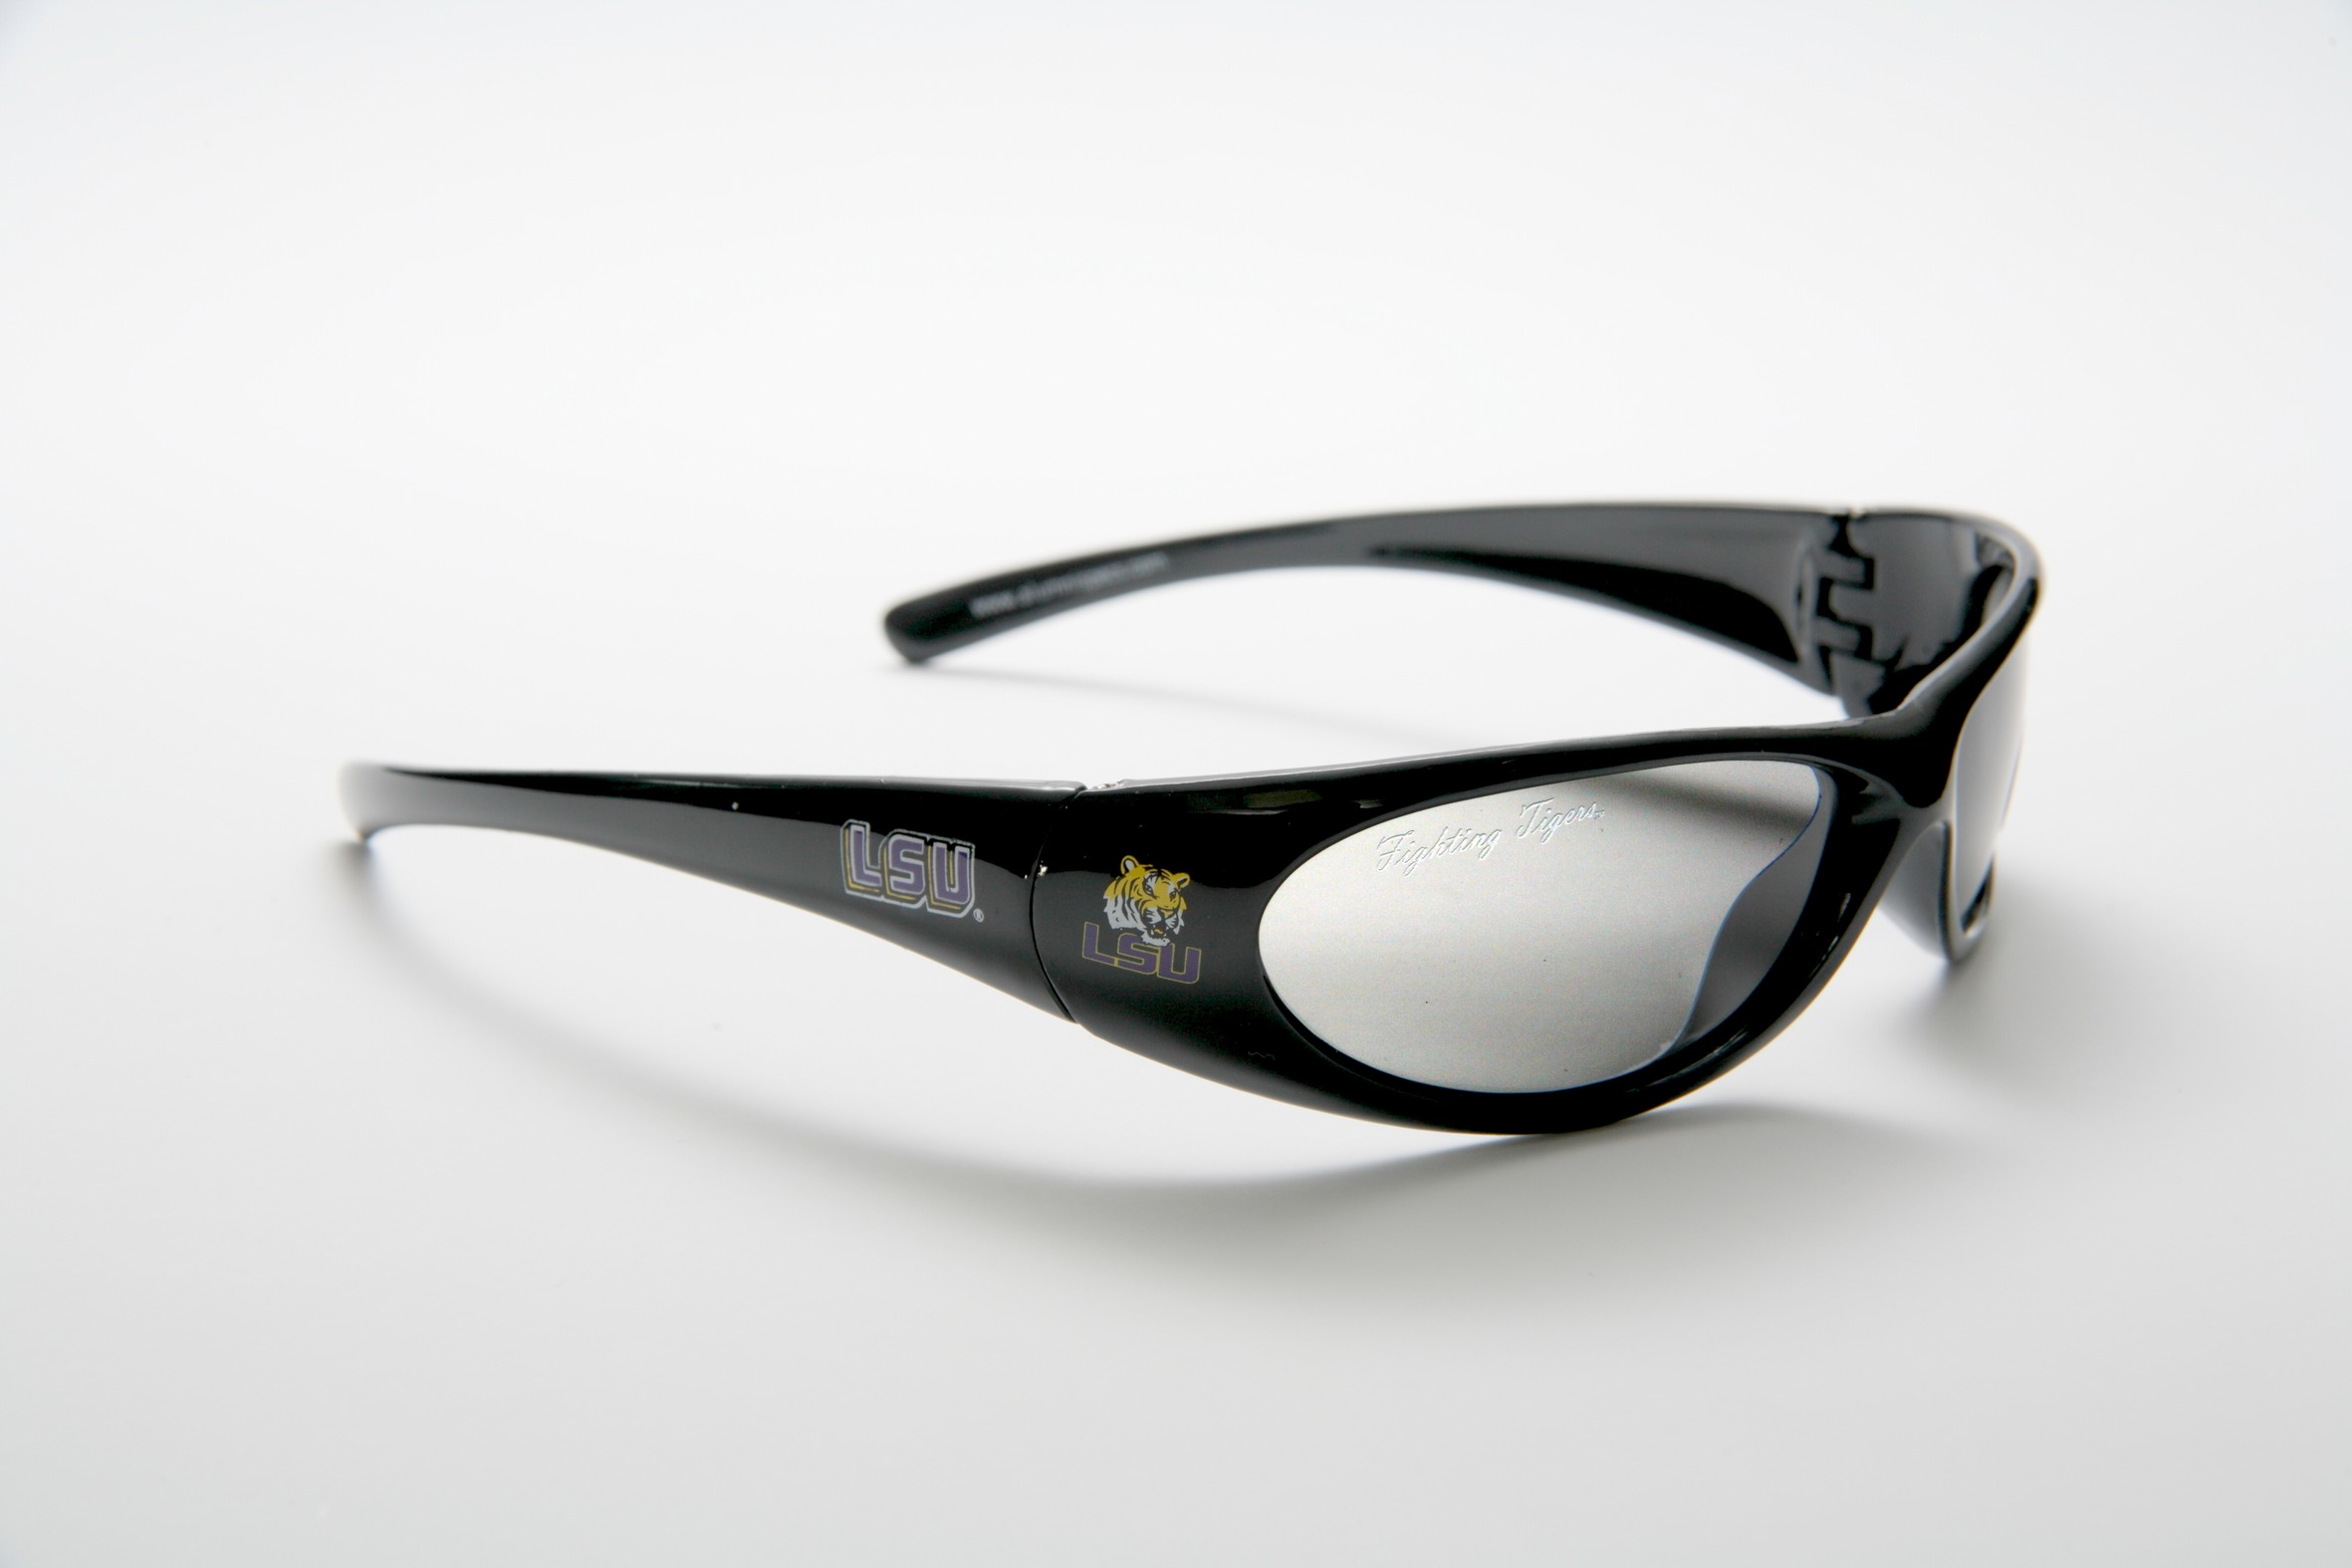 LSU Tigers Polarized Sunglasses